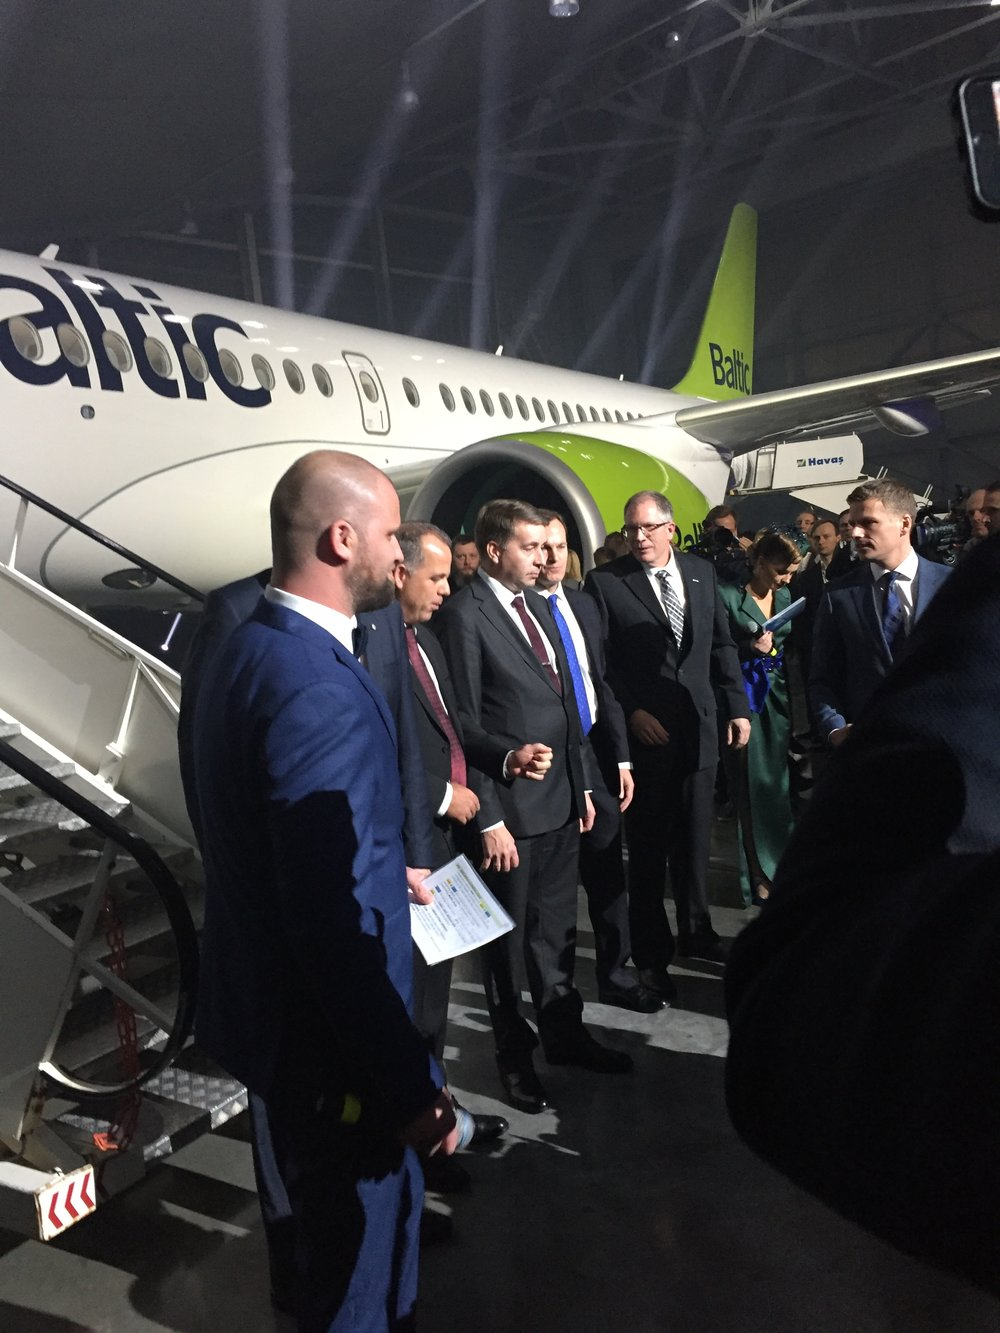 In the center of the picture, Raimond Vejonis, president of Latvia, to his left, Martin Gauss, airBaltics' CEO